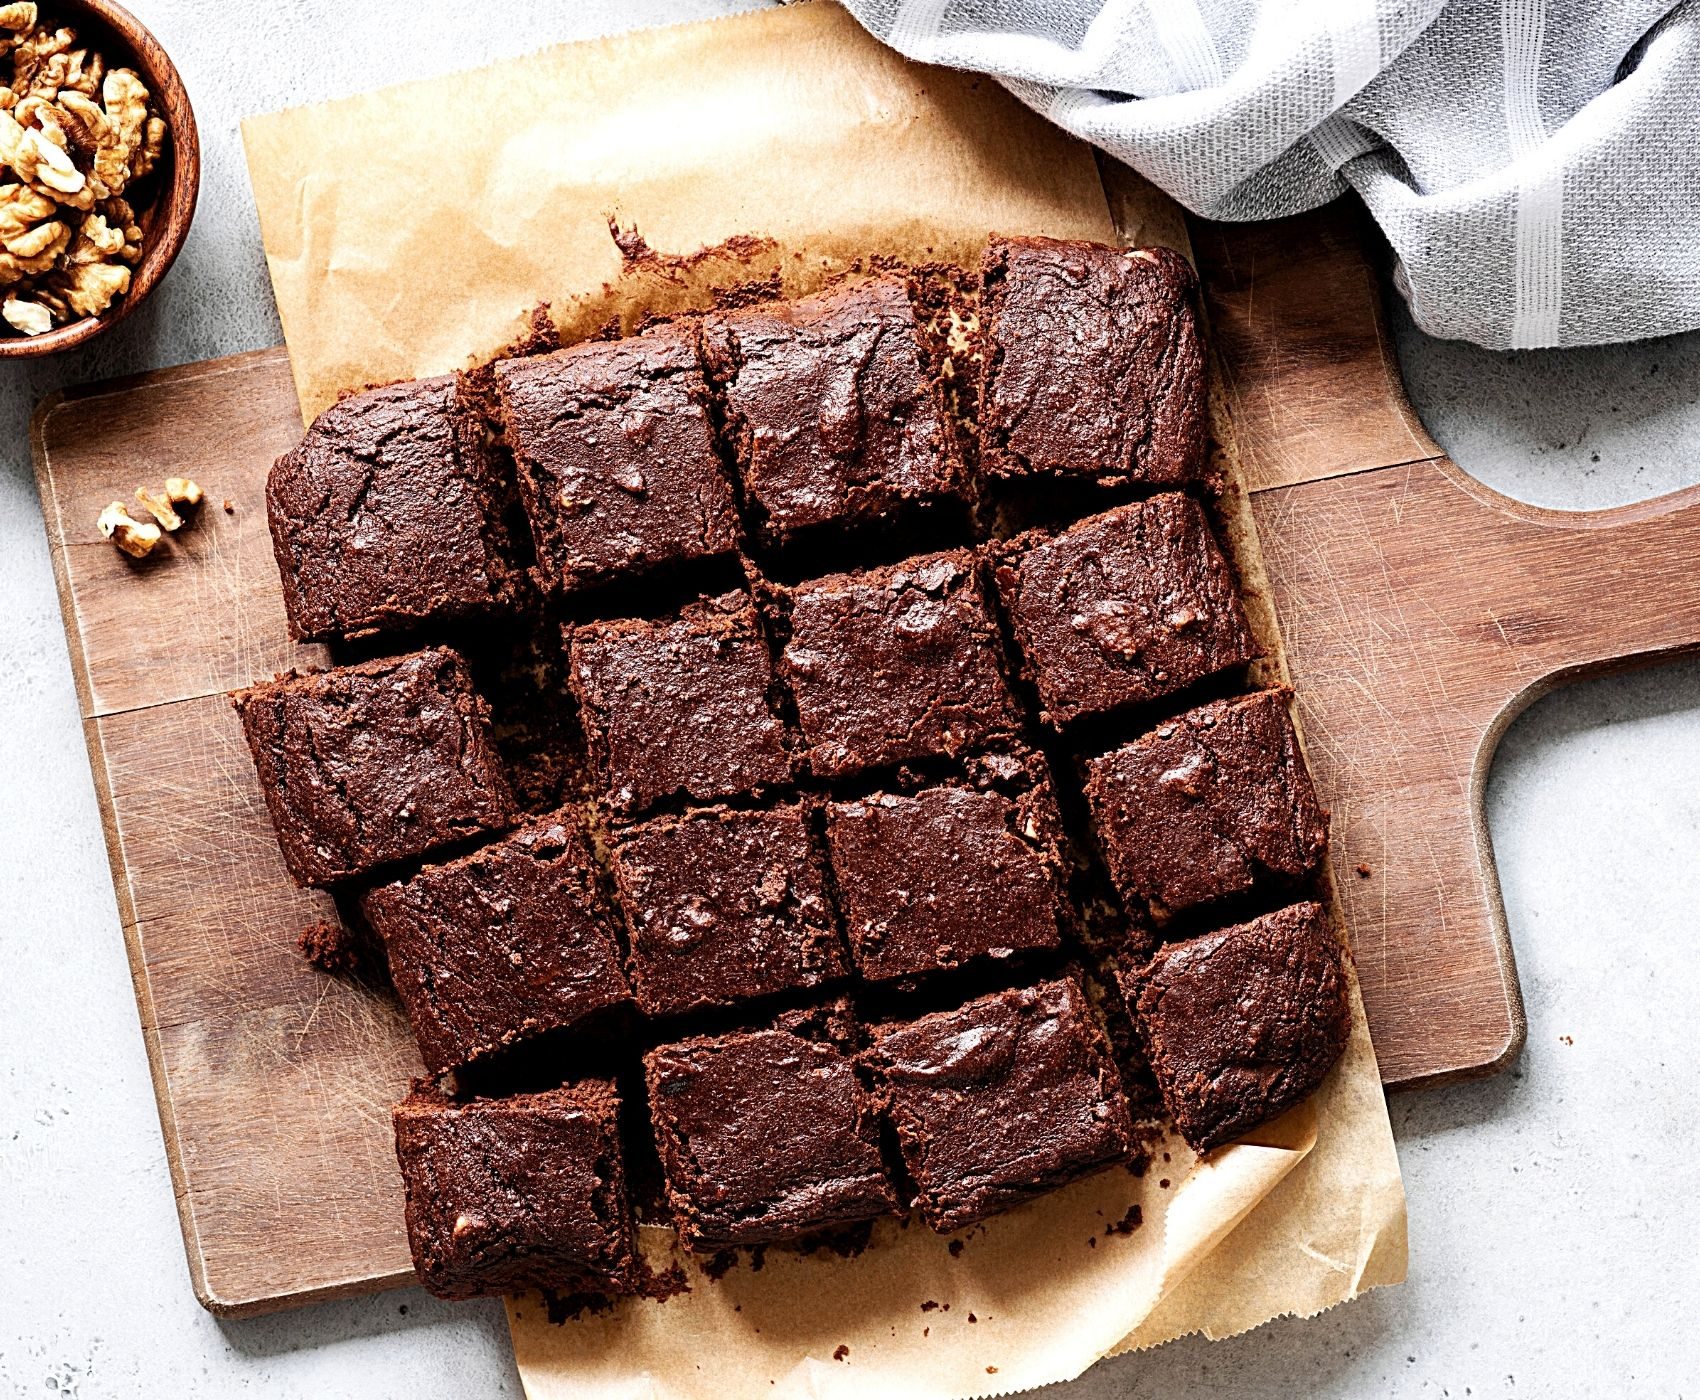 Dark chocolate brownies on a cutting board